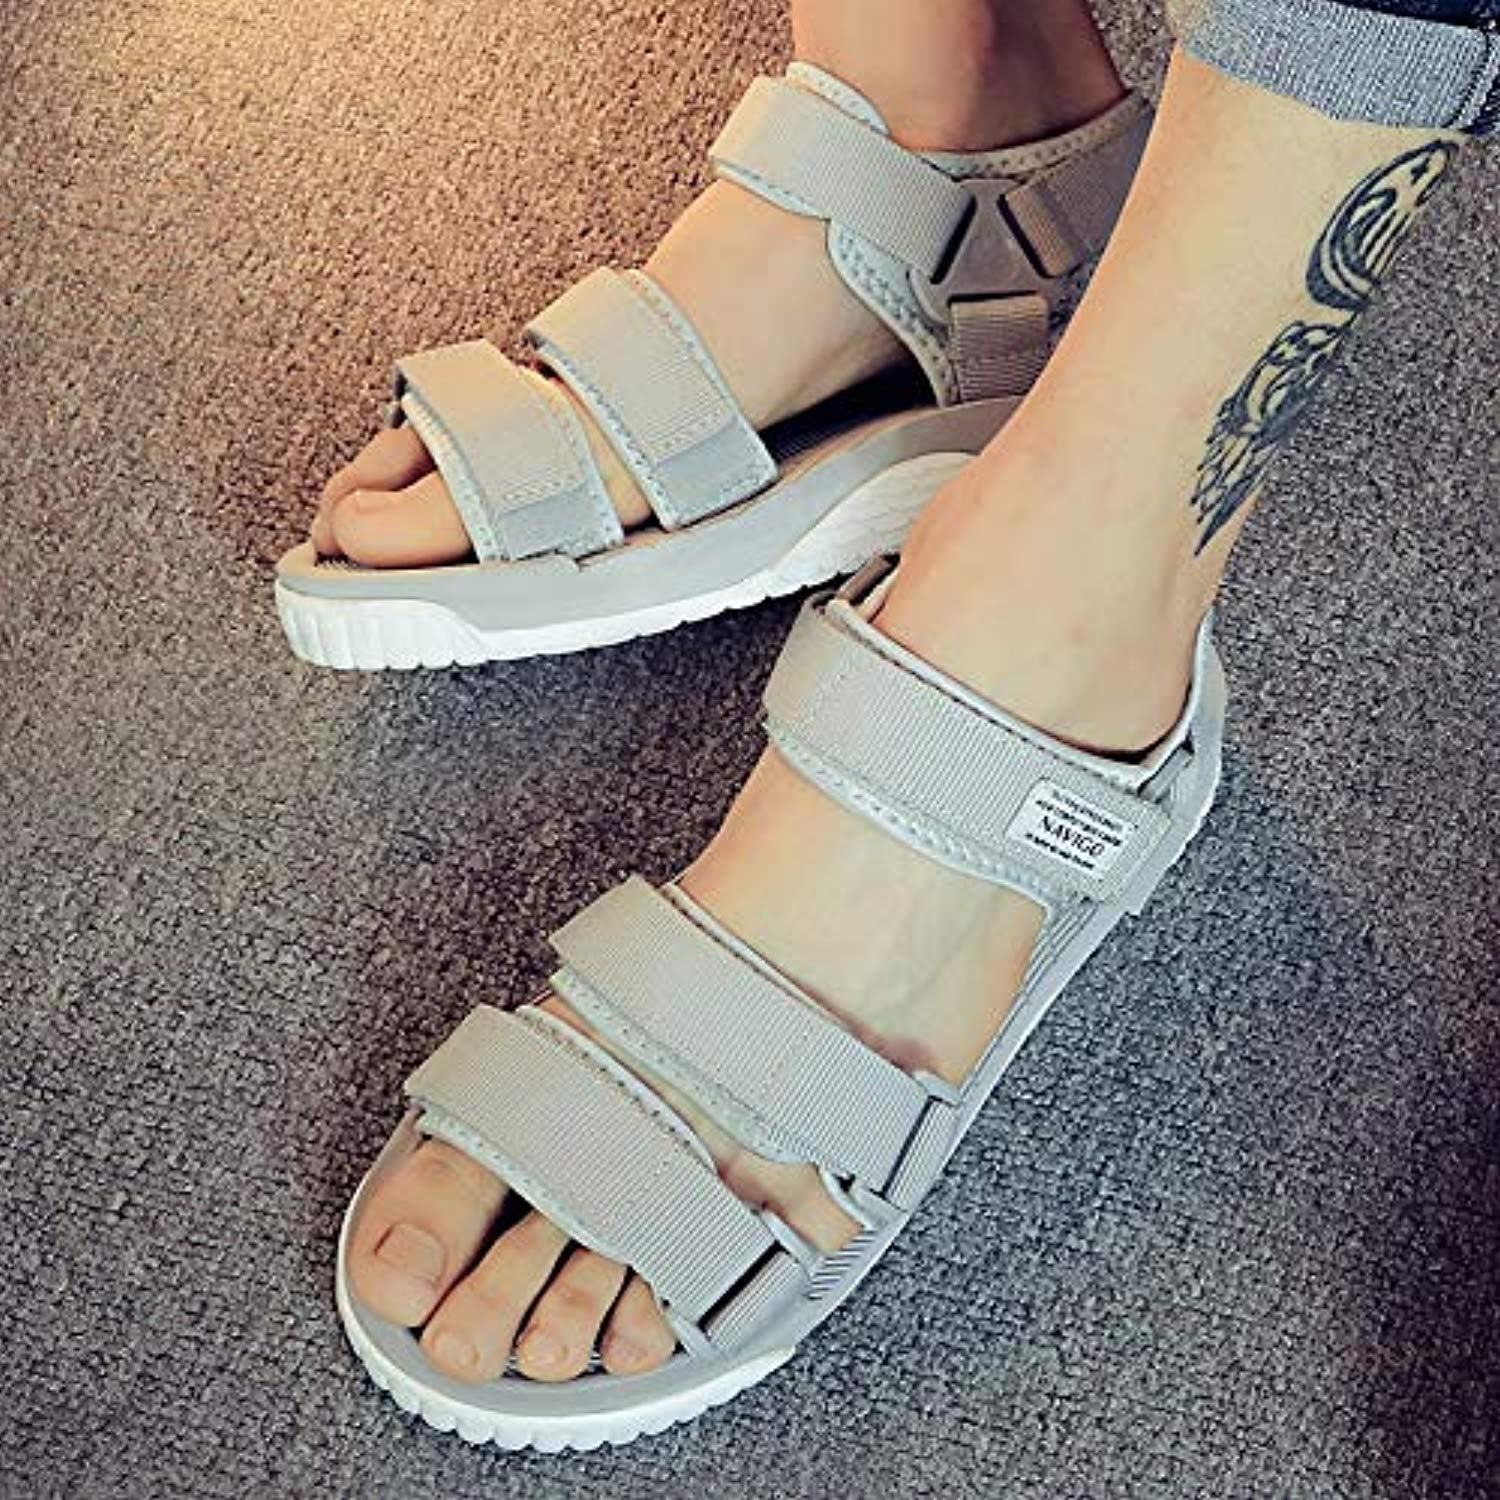 Shukun Herrensandalen Sandals Men's Casual Summer Middle School Students Fashion Teen Couple Beach schuhe